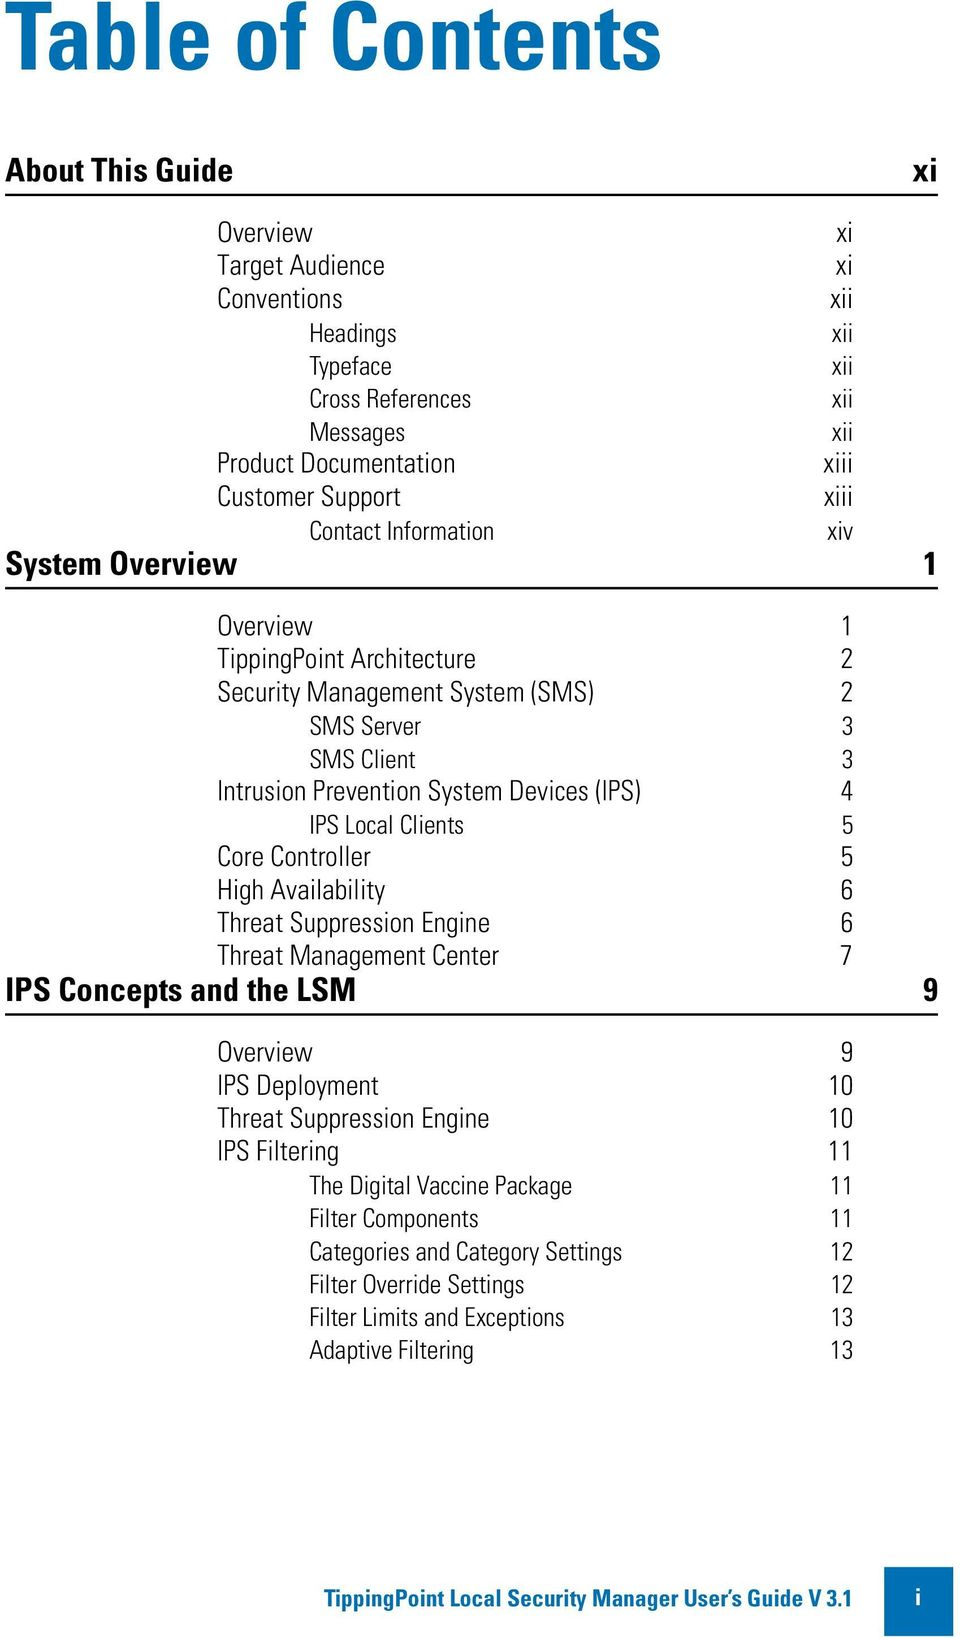 IPS Local Clients 5 Core Controller 5 High Availability 6 Threat Suppression Engine 6 Threat Management Center 7 IPS Concepts and the LSM 9 Overview 9 IPS Deployment 10 Threat Suppression